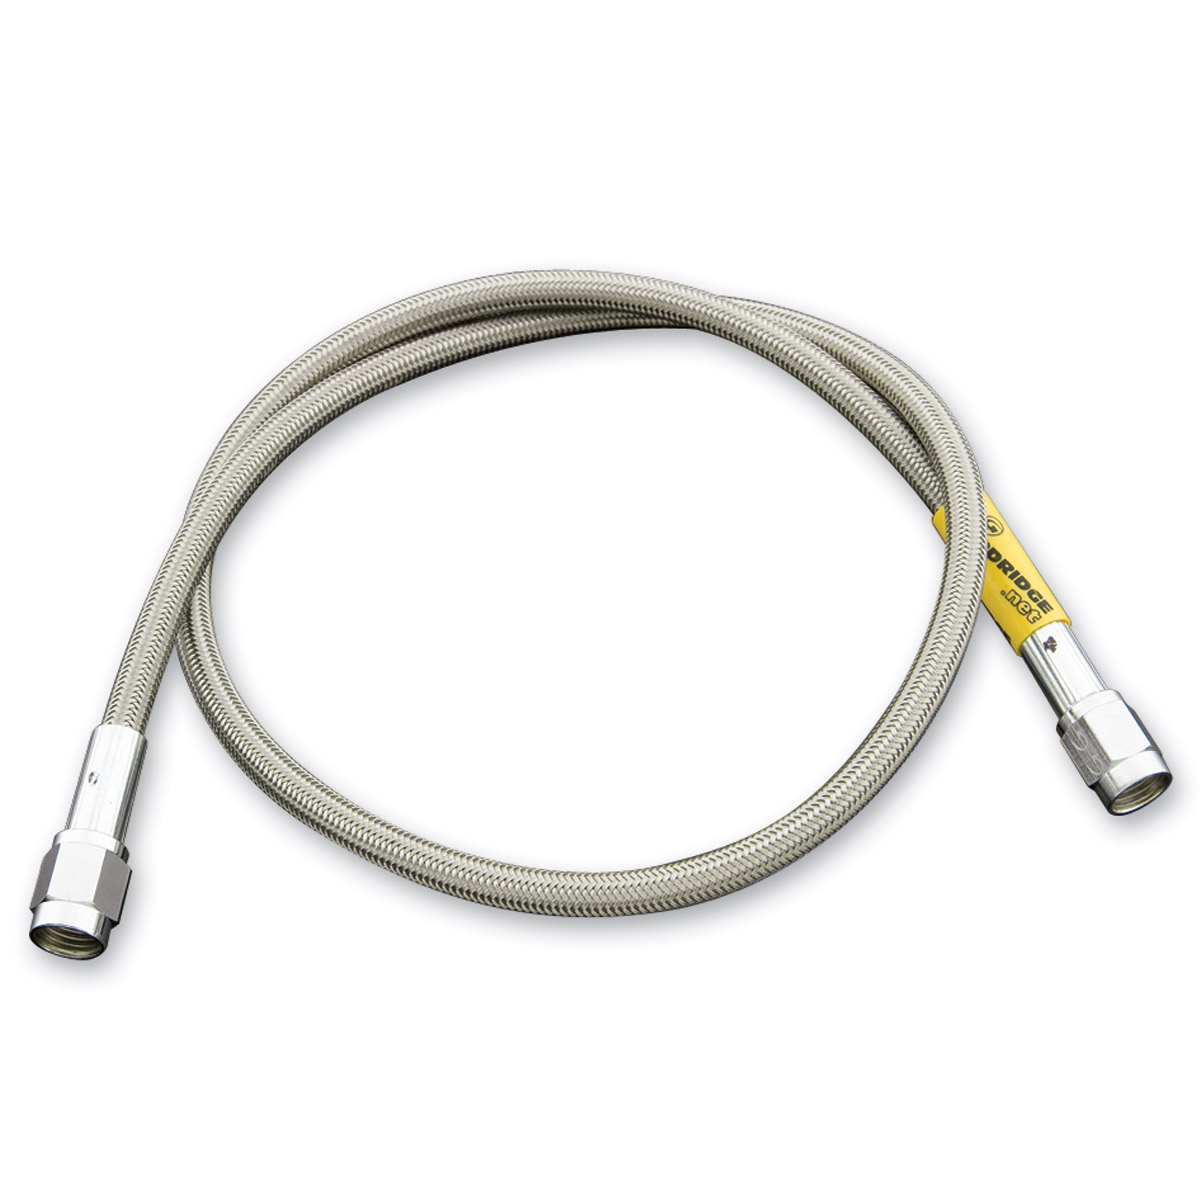 Goodridge Universal Brake Line 30321 Home Data Cable Wiring Together With Harley Davidson Cables And